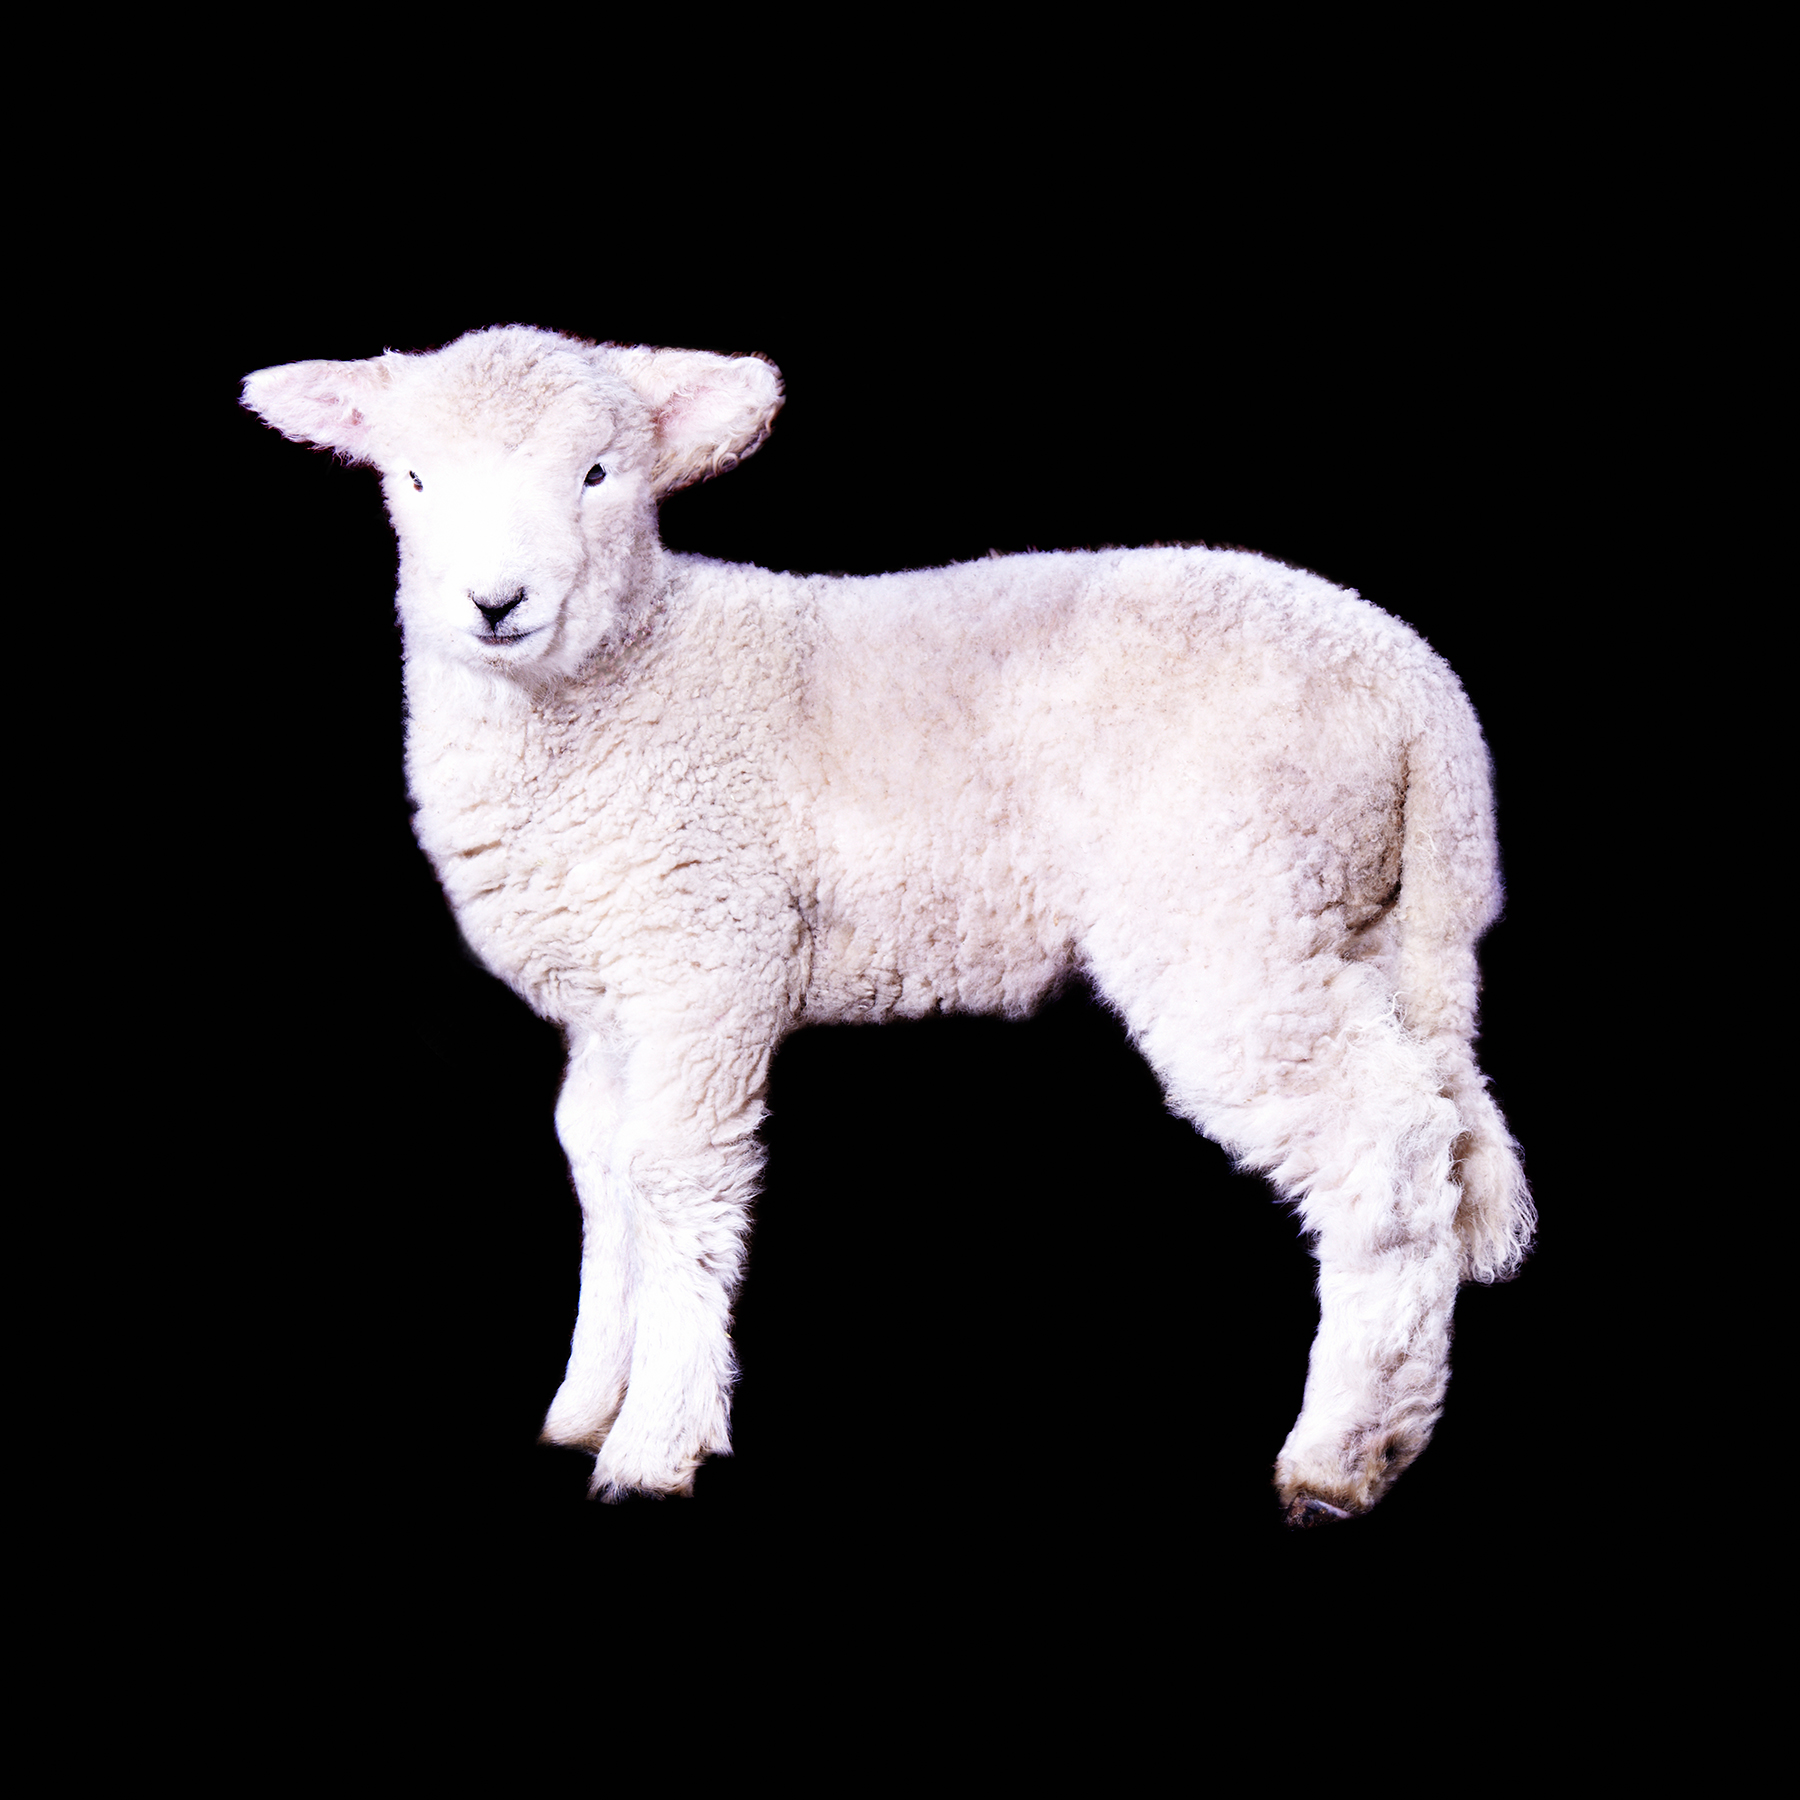 SHEEP-BABY-STONEWALL-DAIRY-FARM-LIVESTOCK-©-JONATHAN-R.-BECKERMAN-PHOTOGRAPHY-040815.jpg